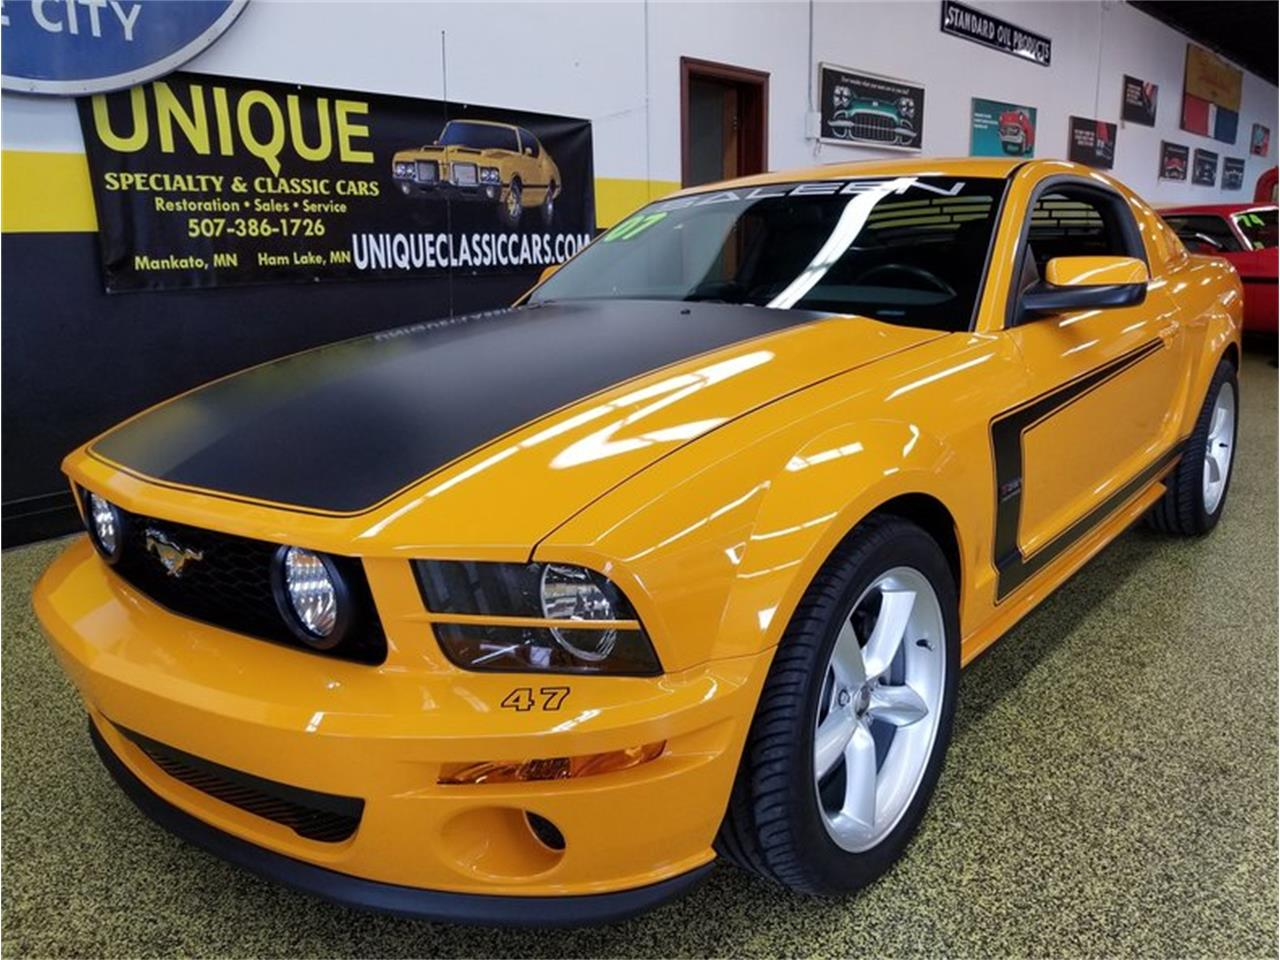 2007 ford mustang saleen heritage edition in mankato minnesota